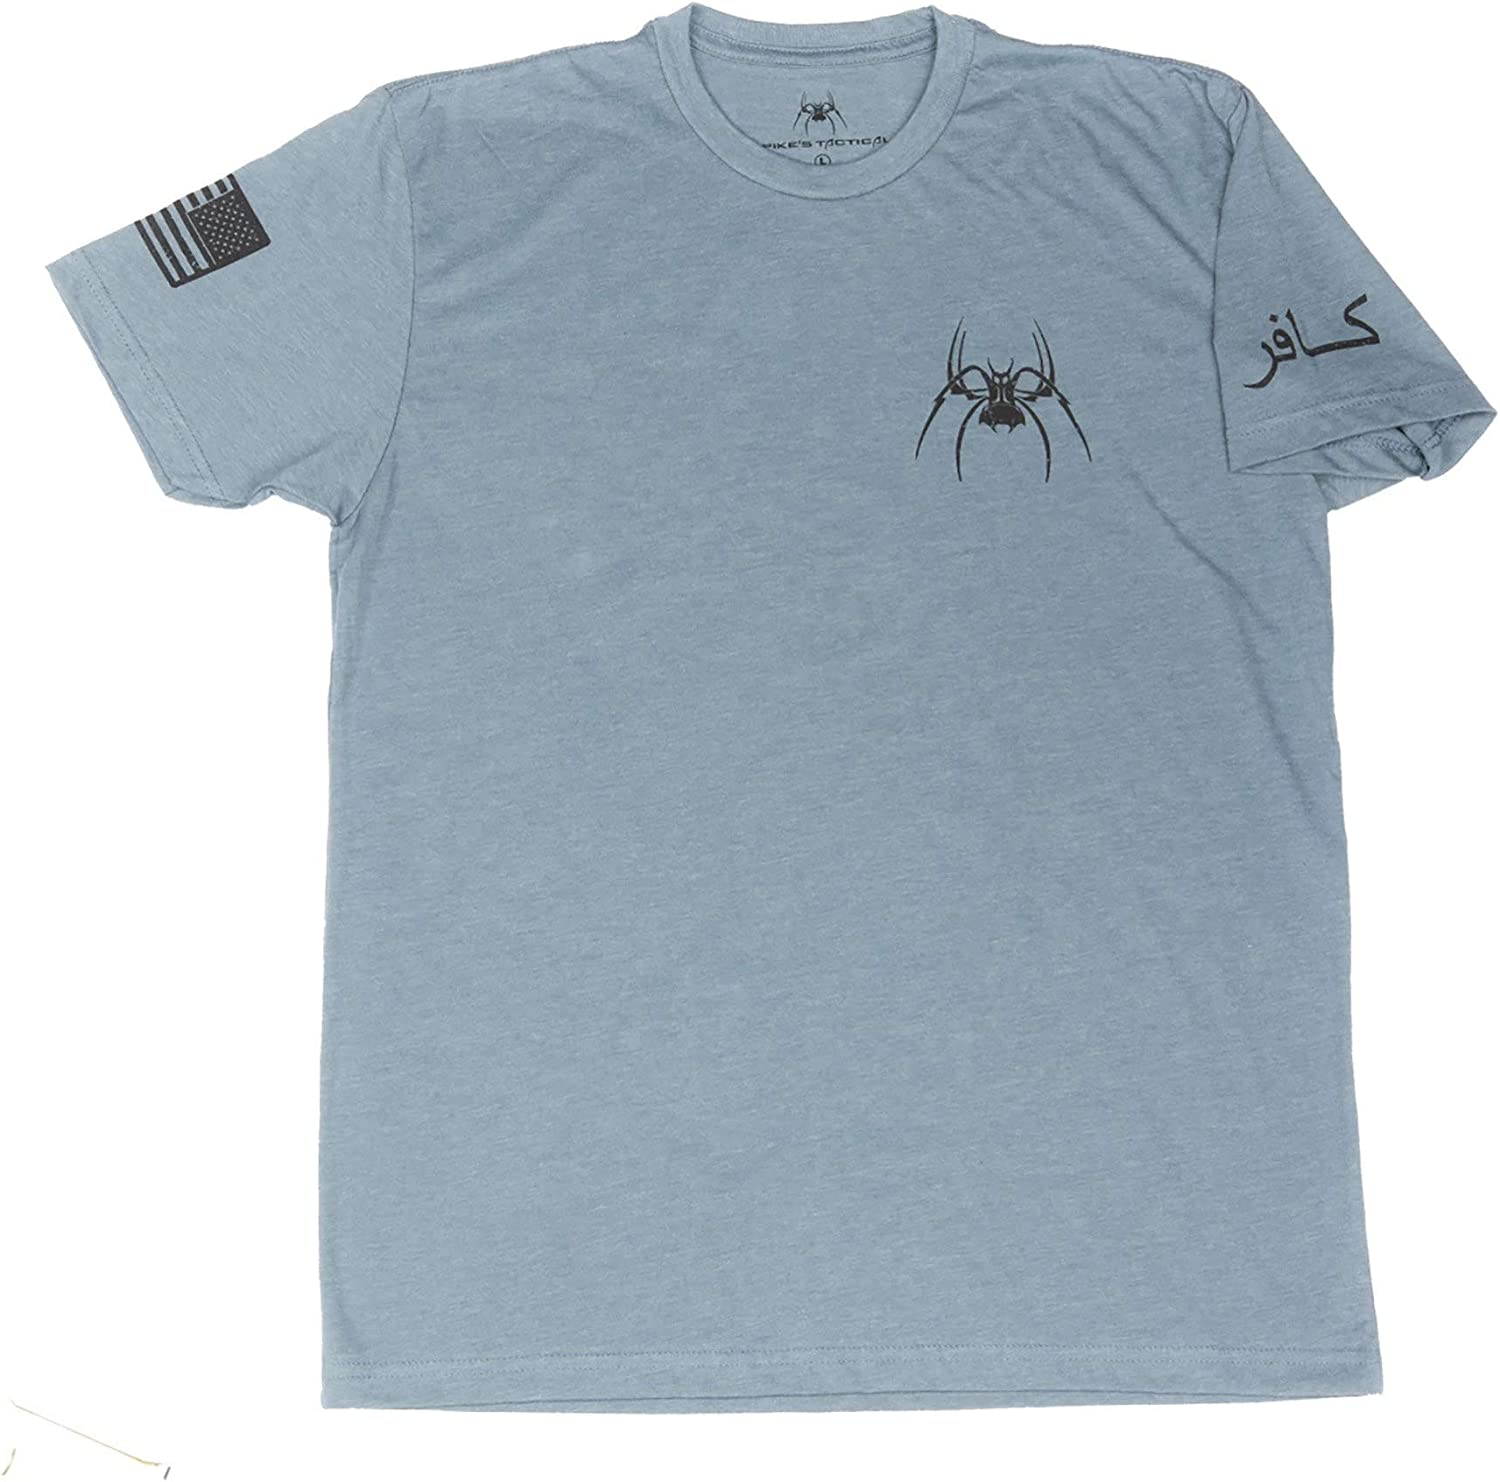 Courier shipping Indianapolis Mall free Spike's Tactical mens